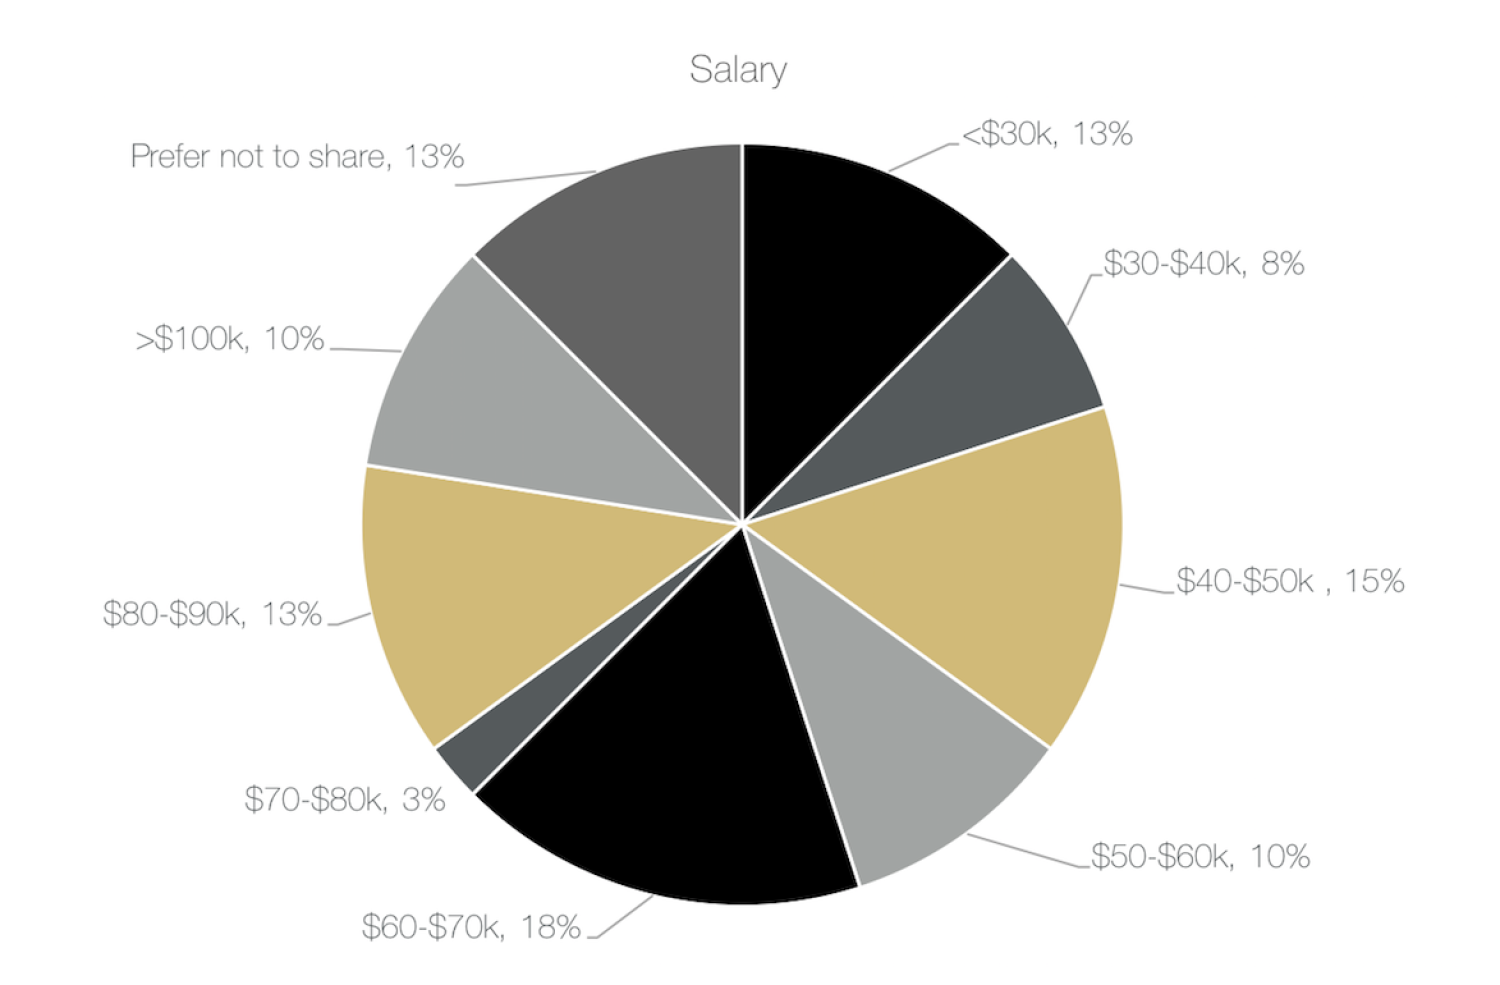 13% salary is under $30k/year, 8% salary is between $30k-$40k/year, 15% salary is between $40k-$50k/year, 10% salary is between $50k-$60k/year, 18% salary is between $60k-$70k/year, 3% salary is between $70k-$80k/year, 13% salary is between $80k-$90k/year, 10% salary is over 00k/year, and 13% of respondents preferred not to share this information.